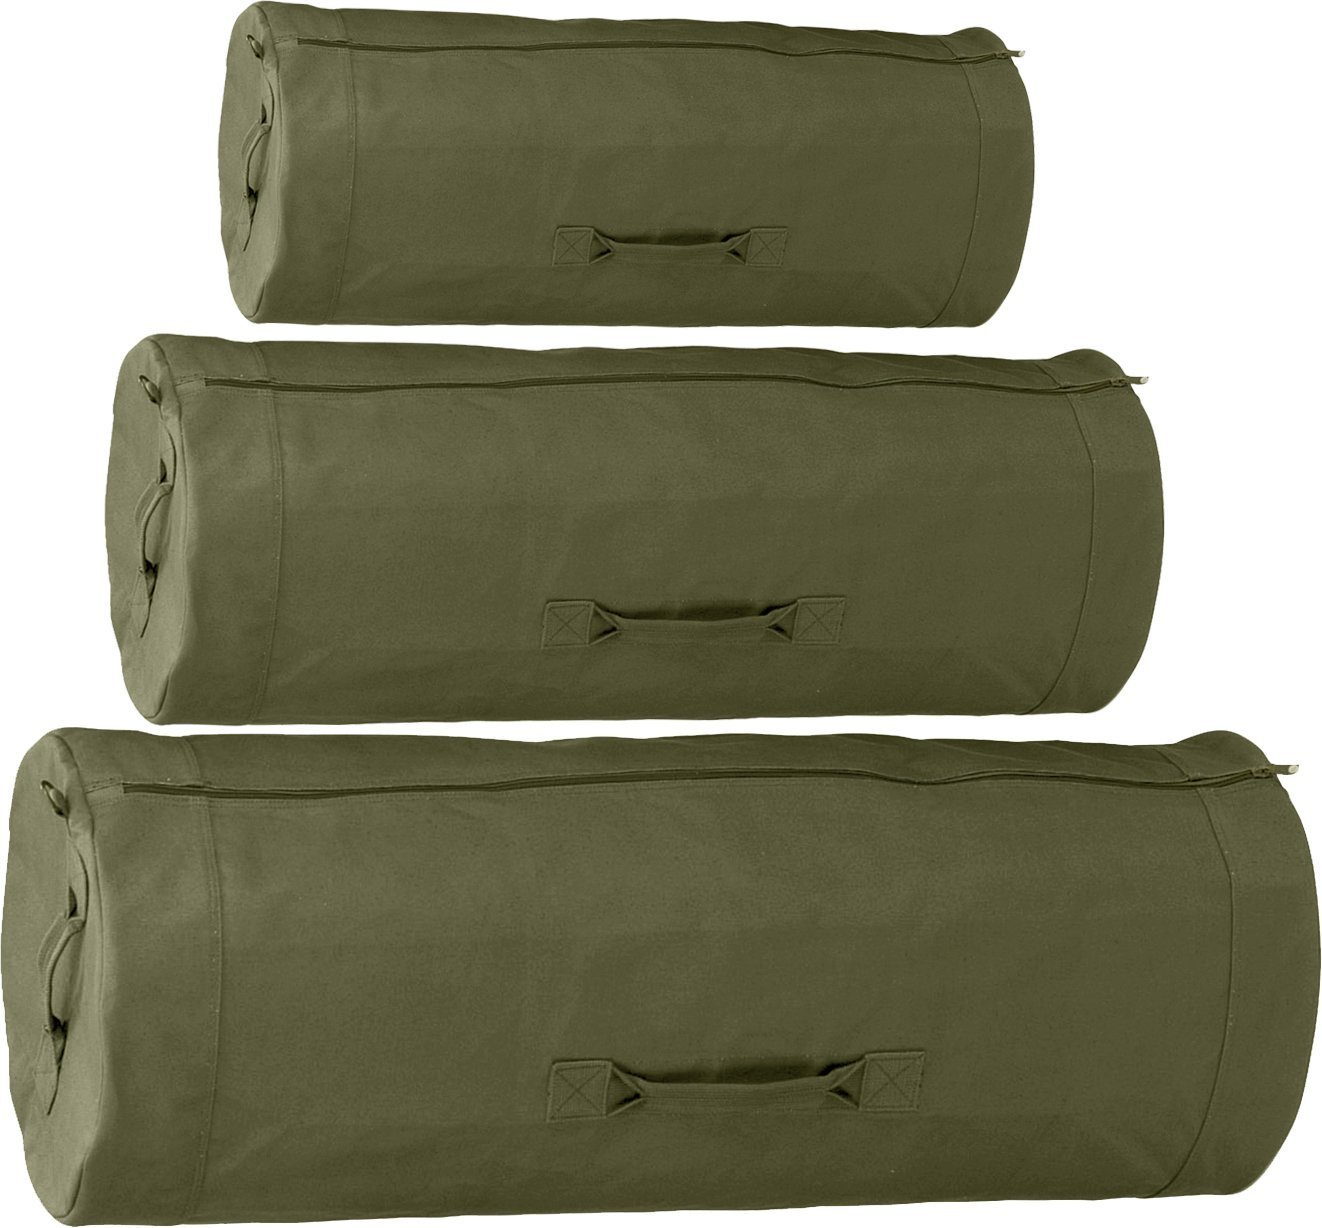 Side Zipper Military Duffle Bag by Army Universe (Olive, 30'' x 50'')